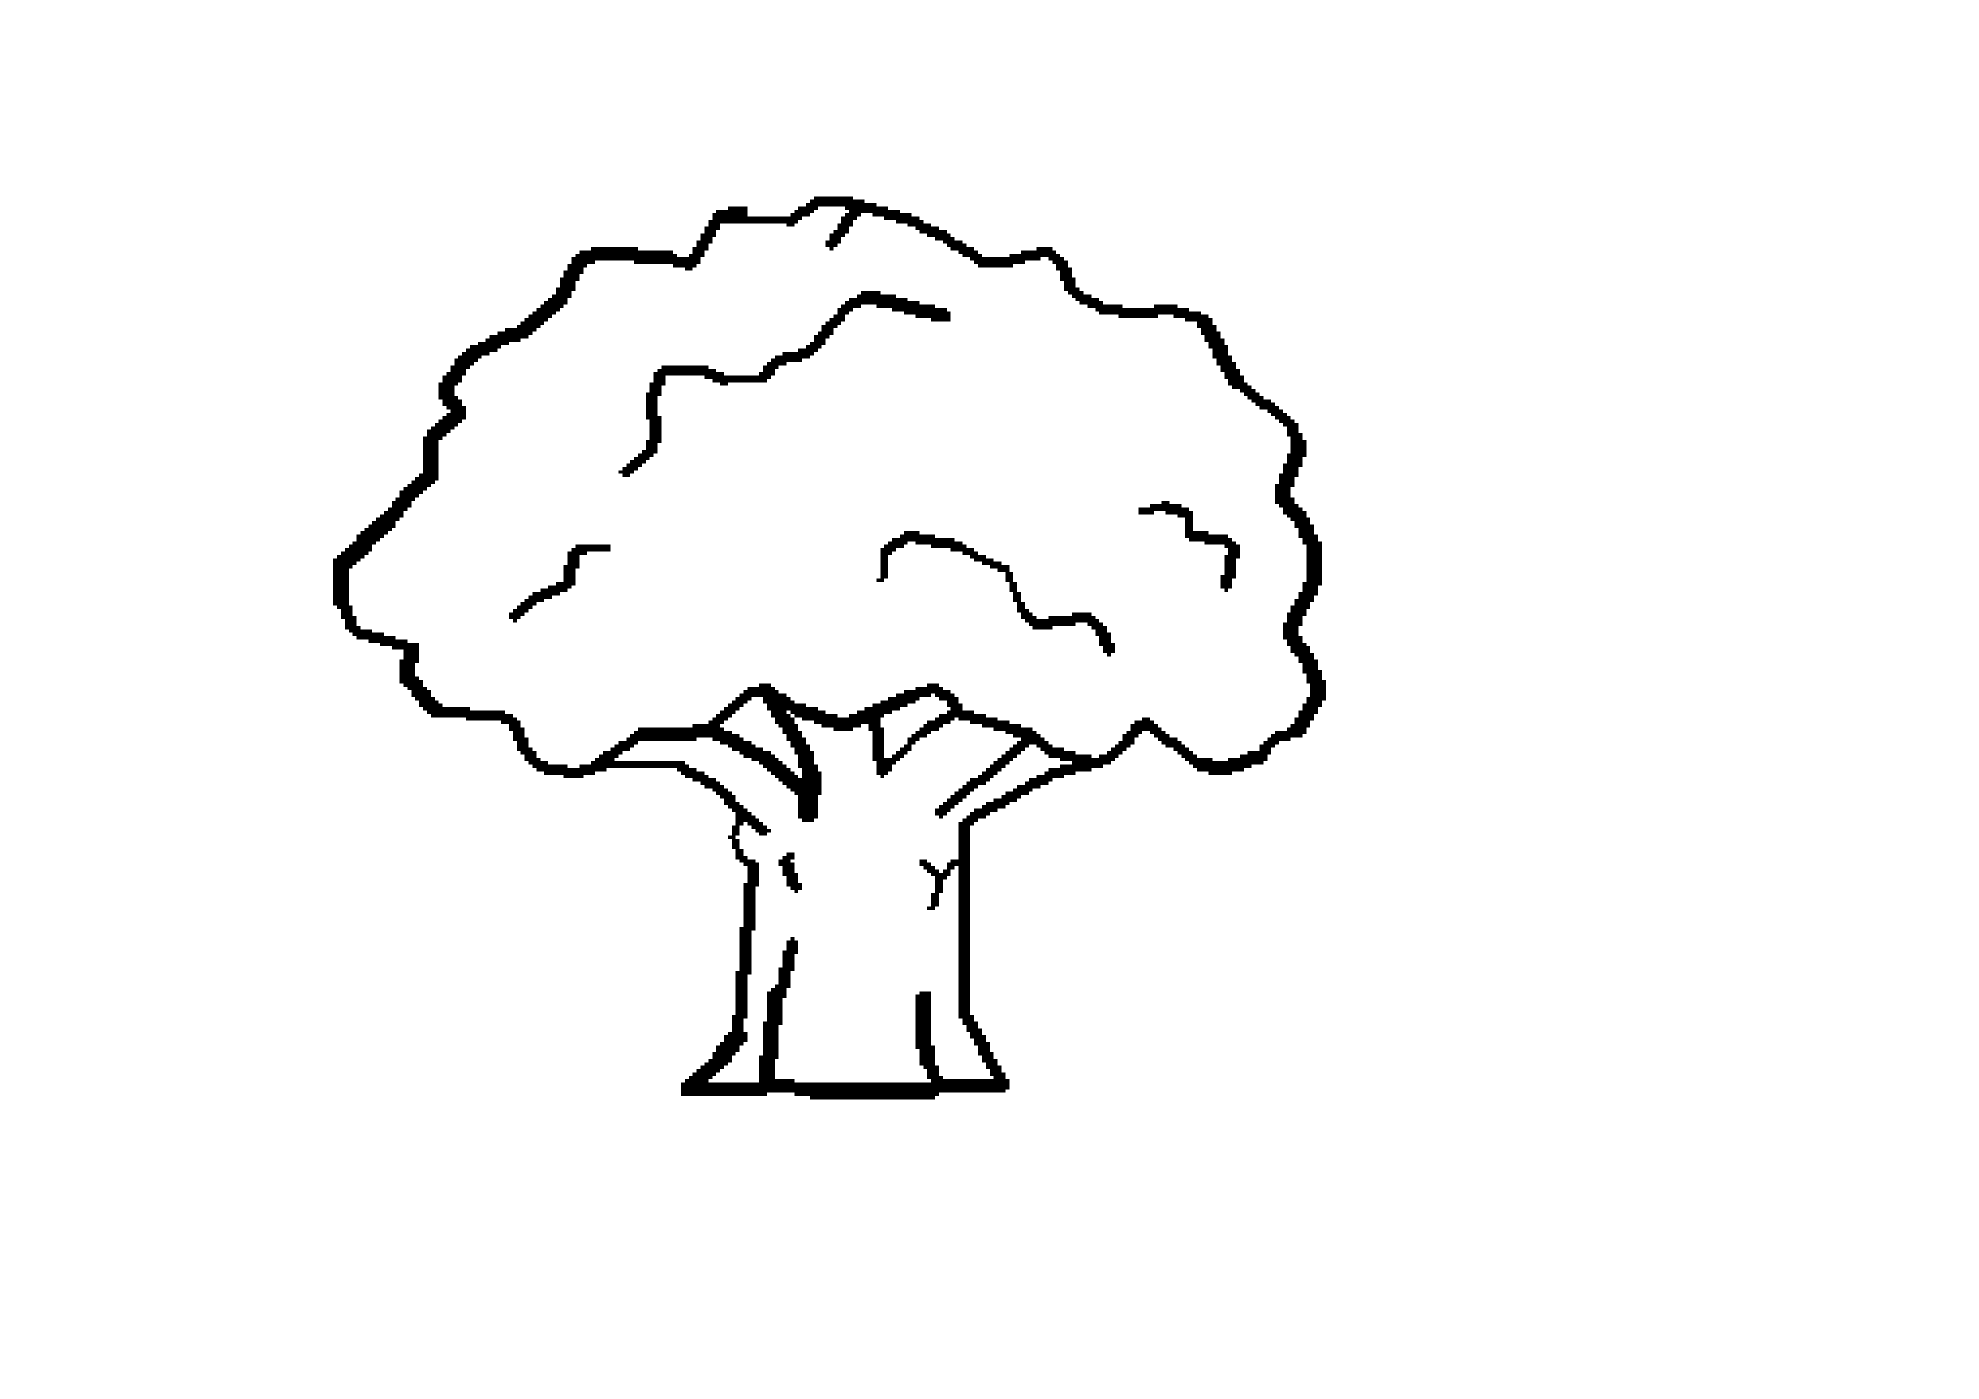 Tree images black and white clipart clip transparent clip art black and white | clipartist.net » Clip Art » Tree ... clip transparent